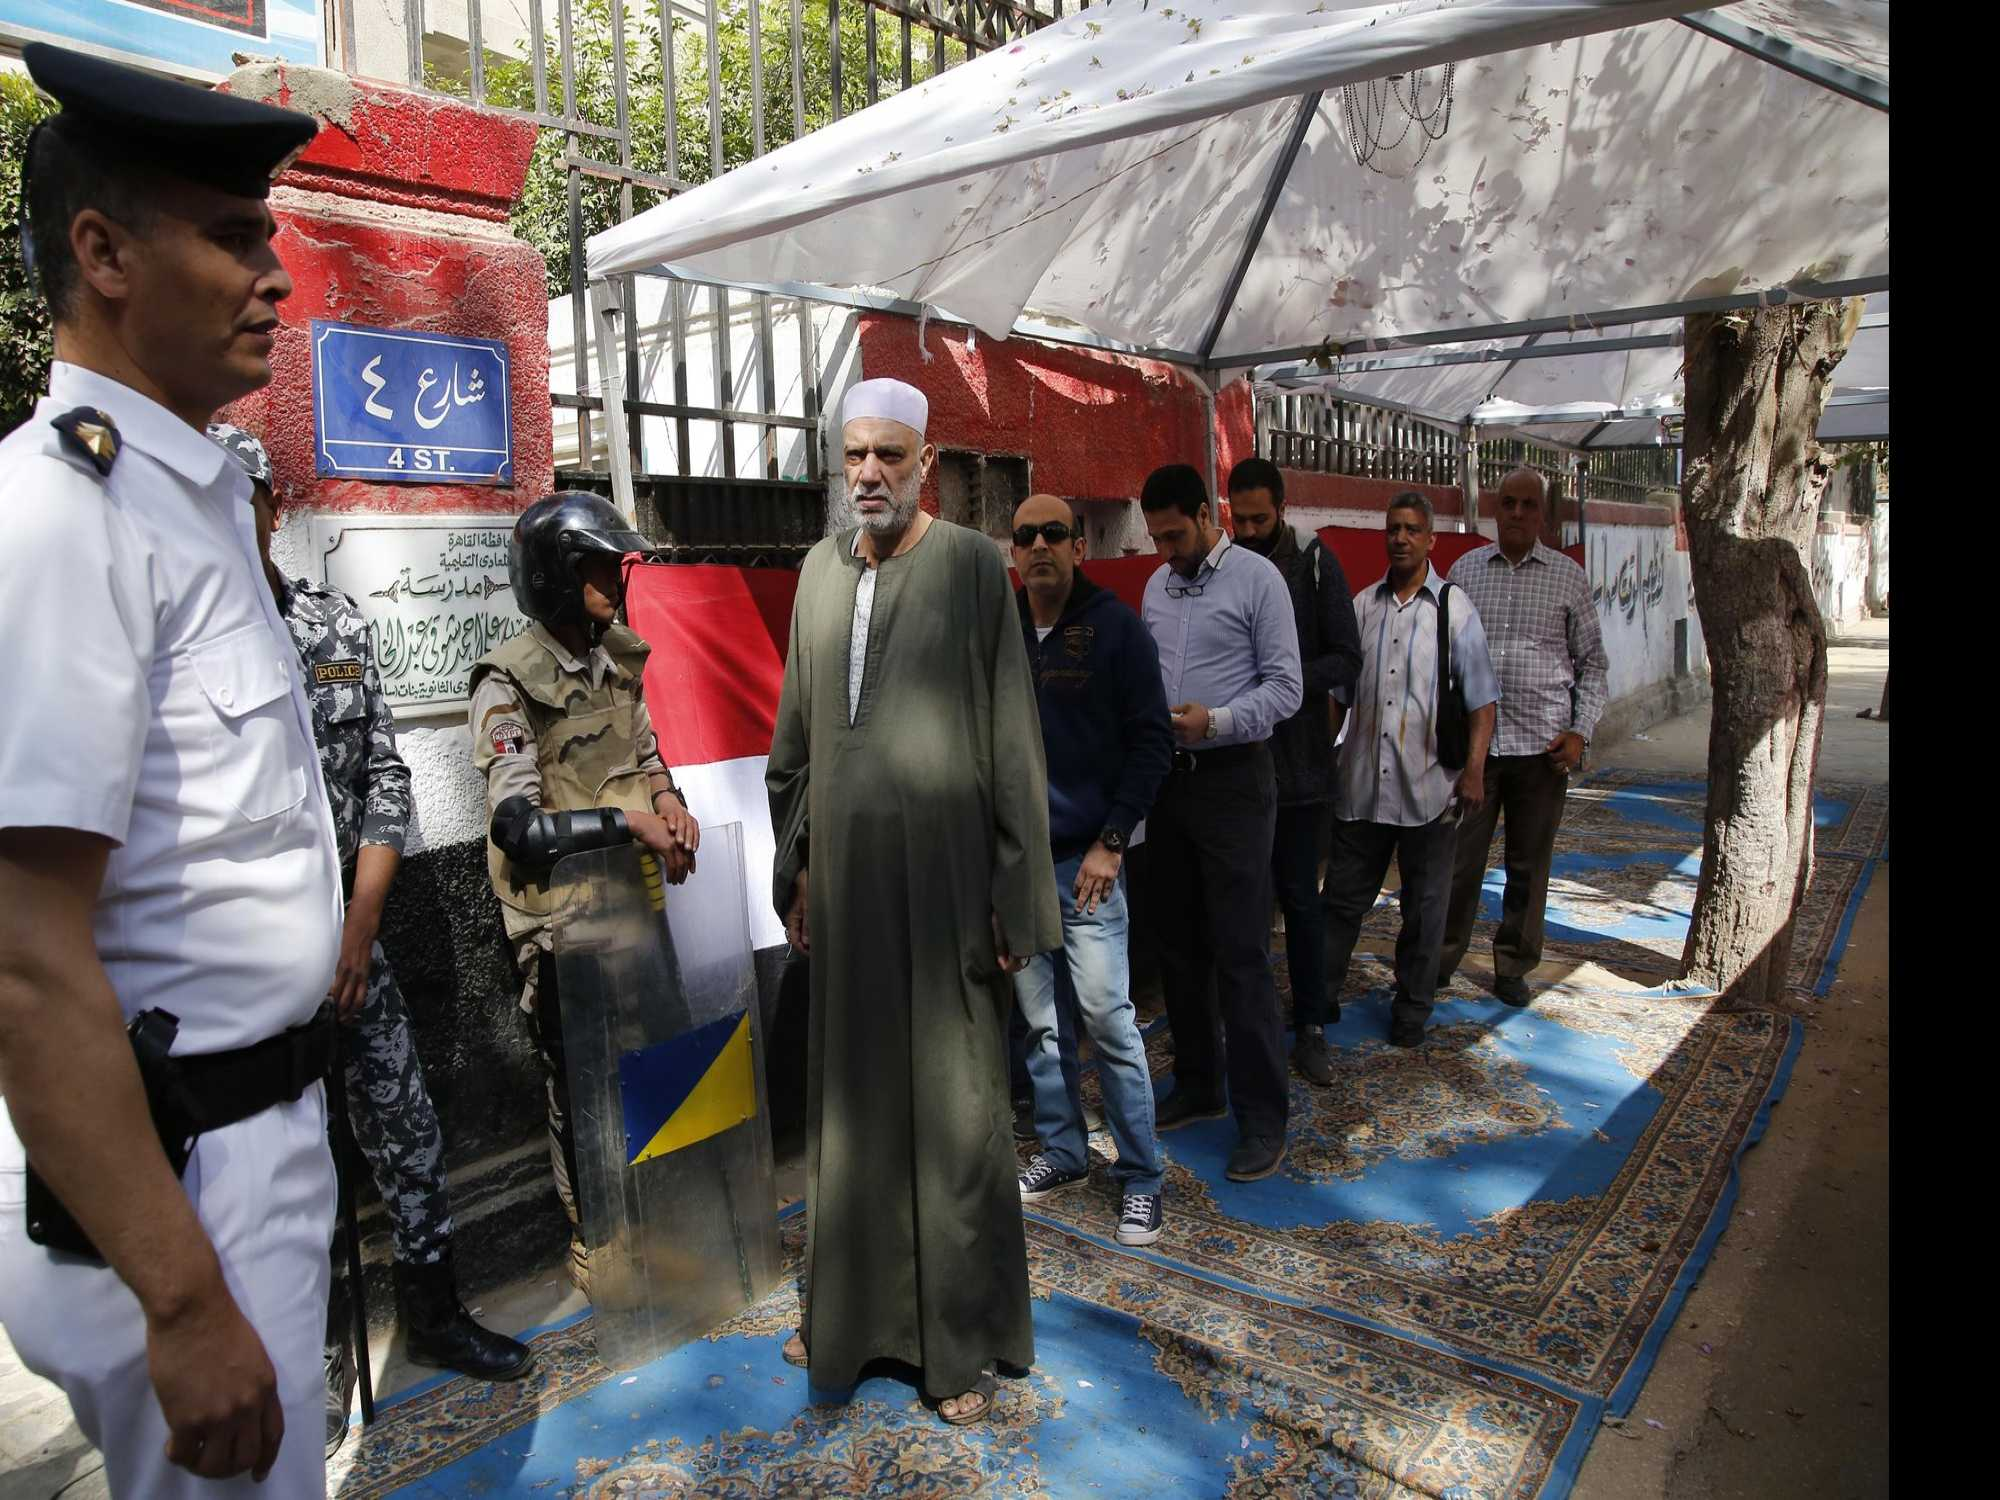 Egyptians Vote on Changes That Would Extend el-Sissi's Rule